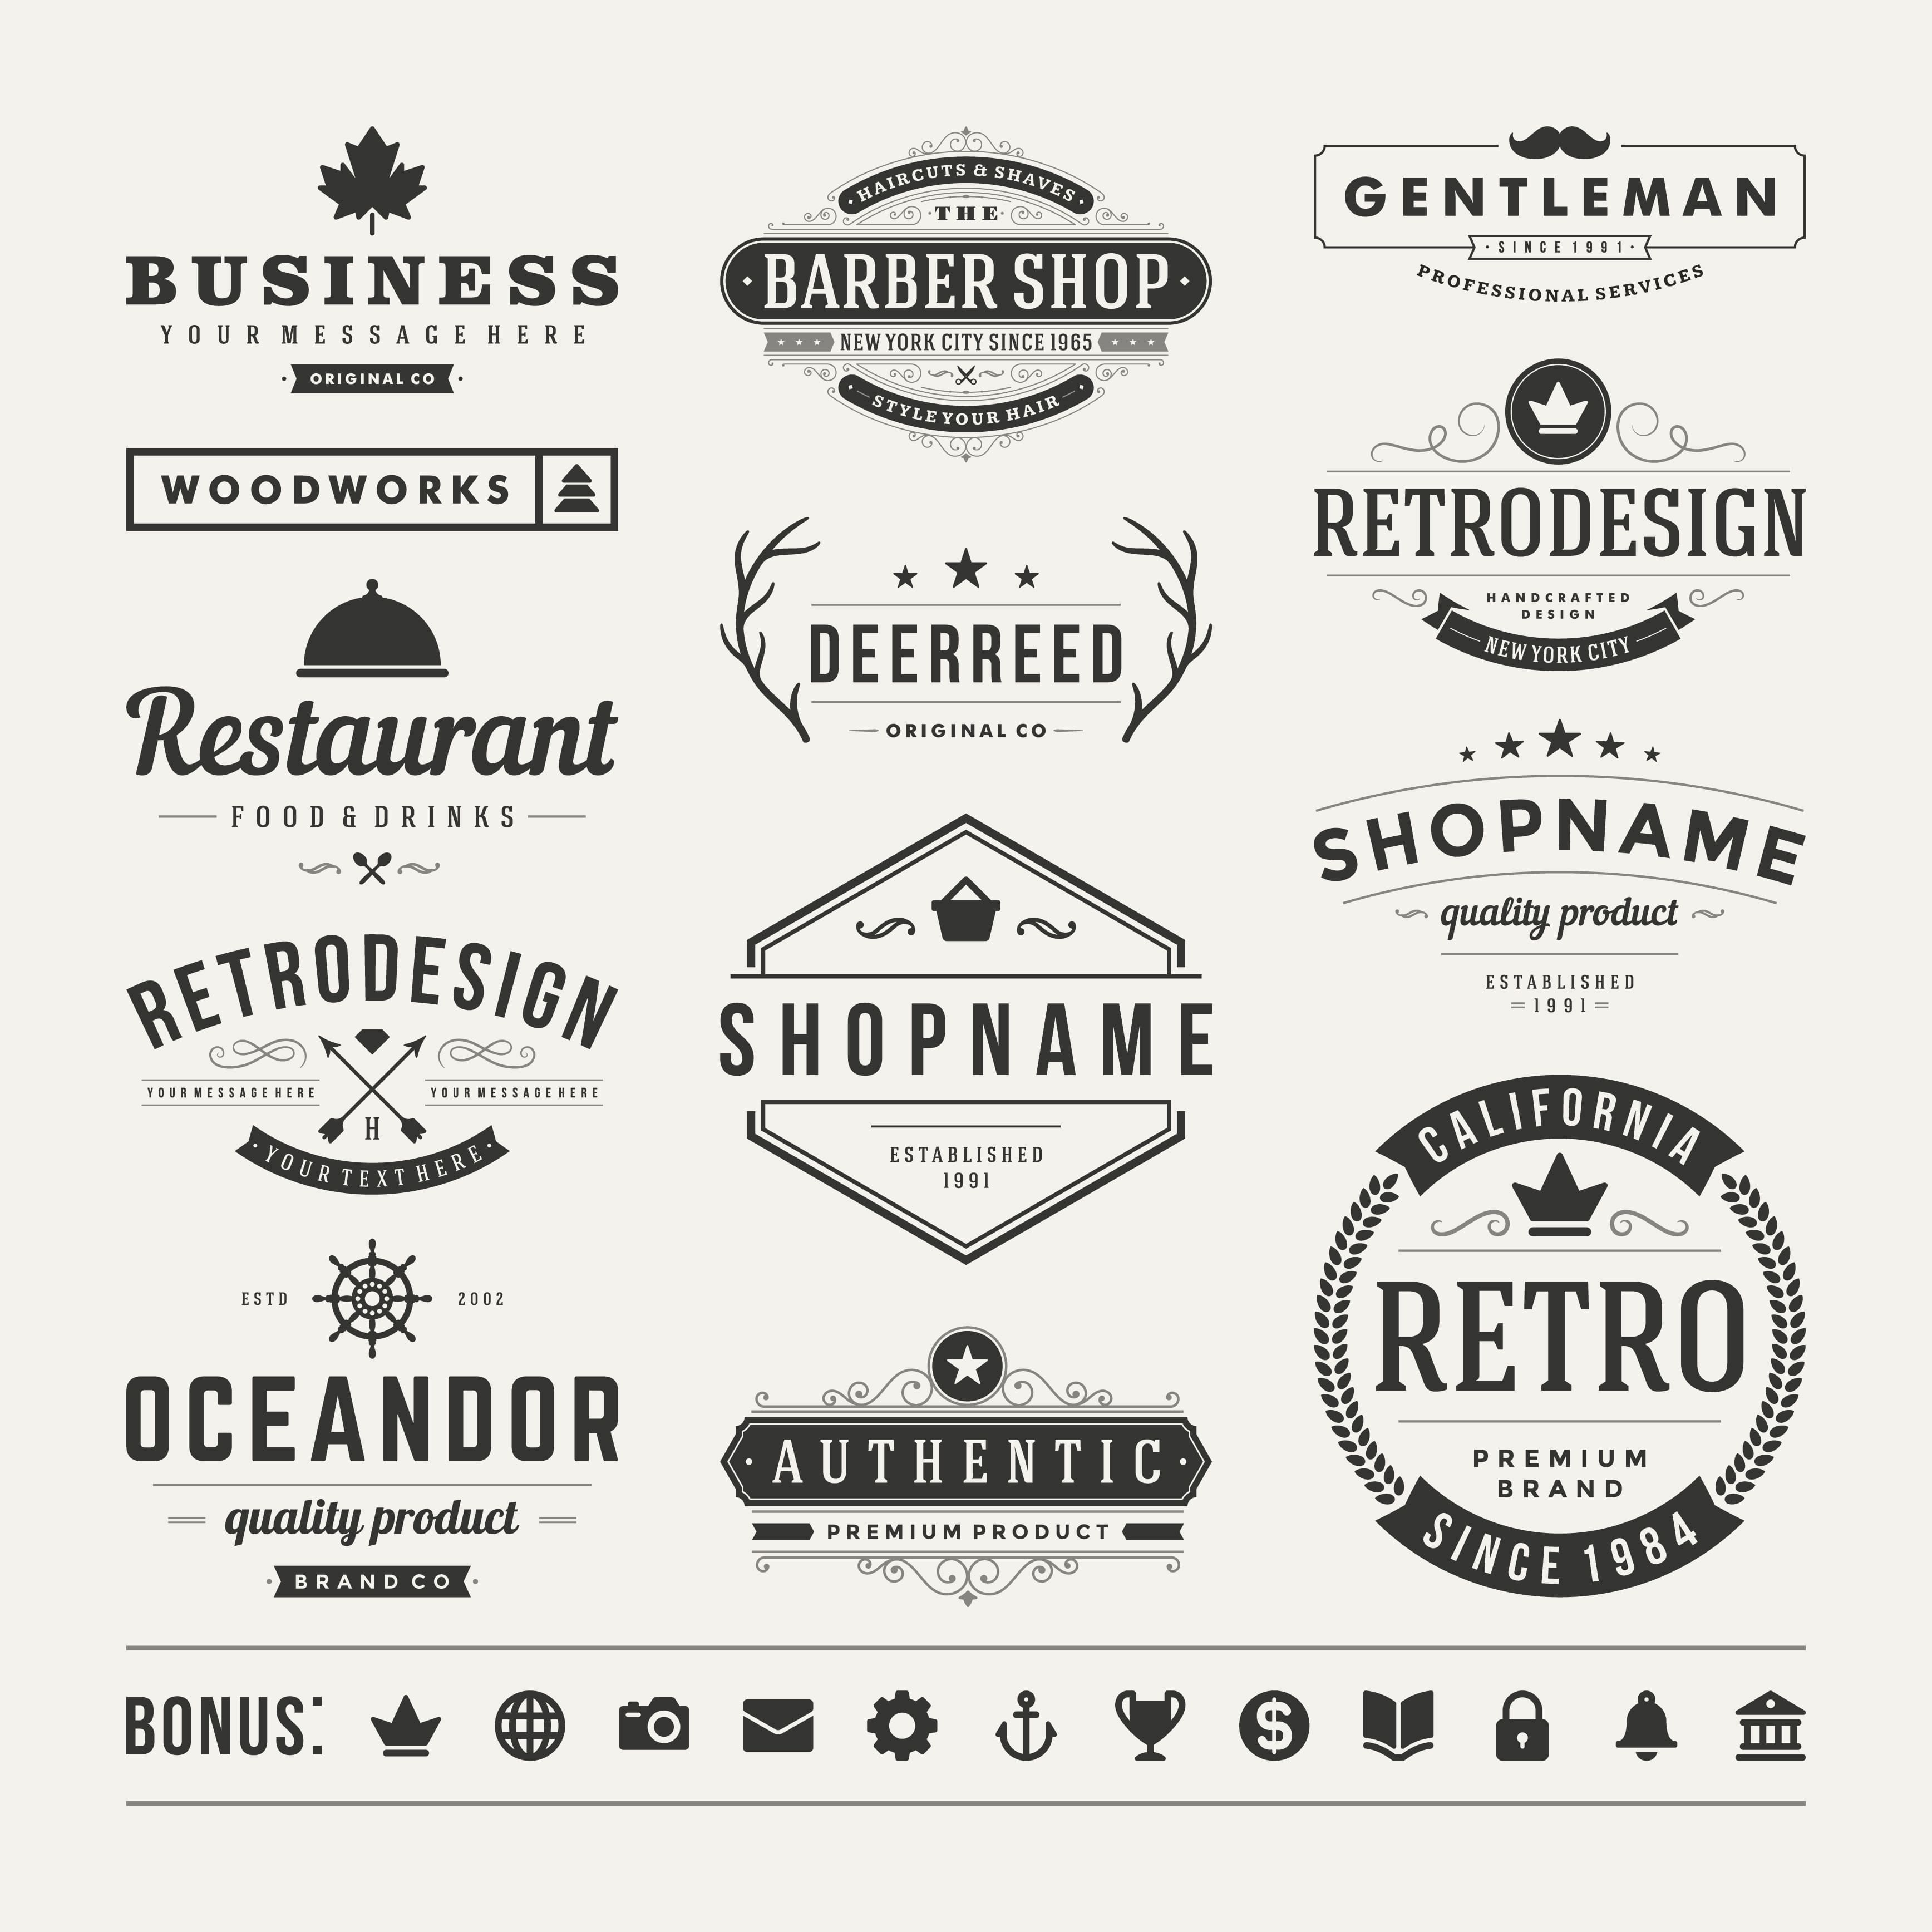 Definitive Guide To Designing A Logo